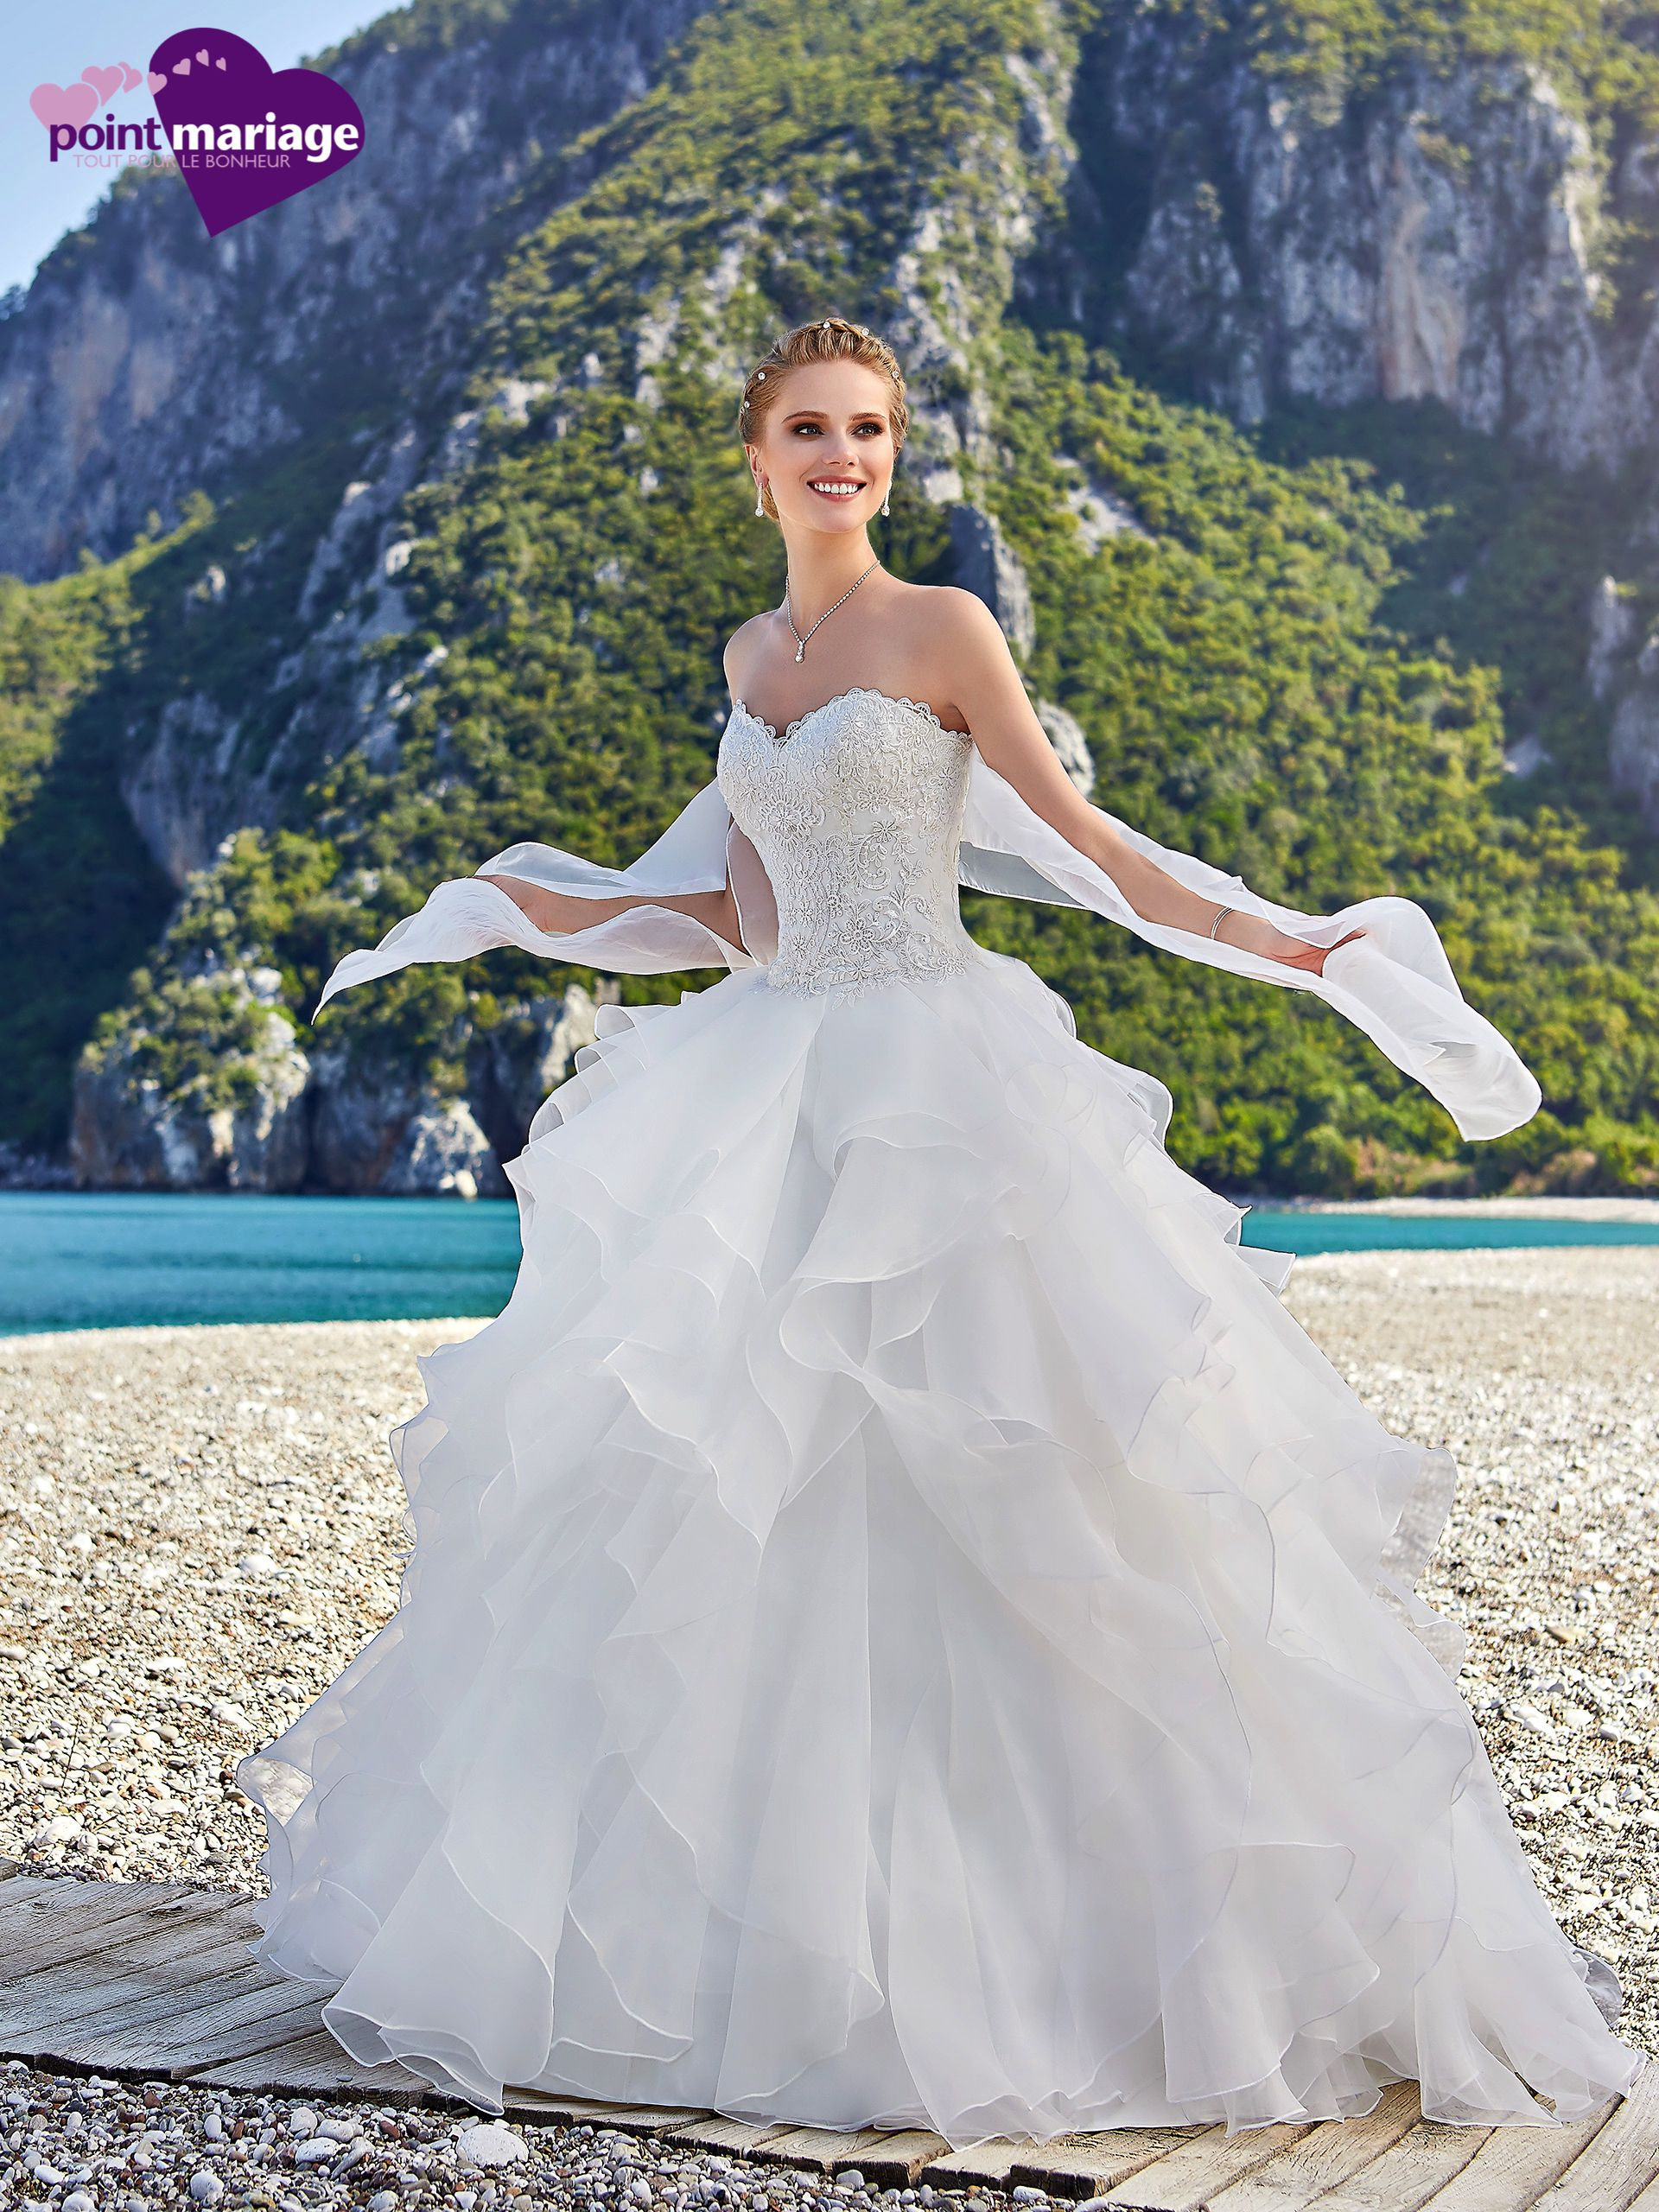 Robe Galice #Collection 2018 #PointMariage